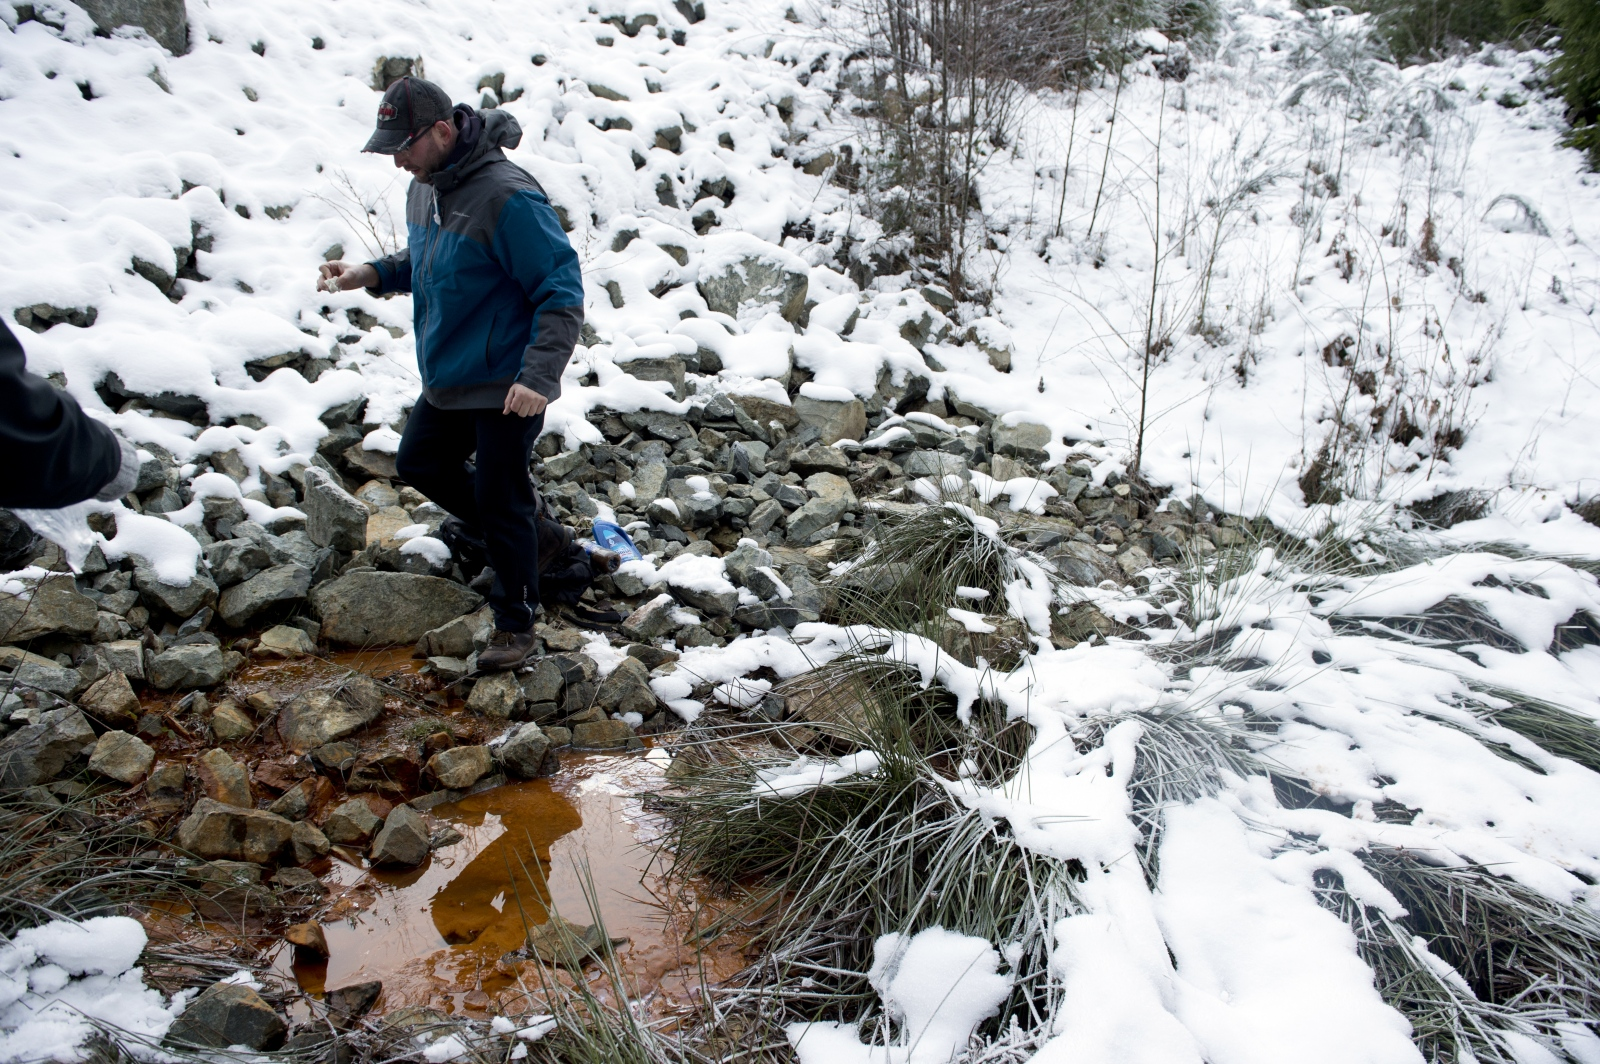 Luke Cross, of Duncan, collects water near Lot 21 on Jan. 1, 2016. Cross is a vocal opponent of the site and posts regular videos on social media to spread awareness. Lot 21, which is adjacent to the South Island Resource Management site Lot 23, is owned by Cobble Hill Holdings. In Oct. 2010, over 1000 tonnes of contaminated soil was dumped in Lot 21 without a permit. The leachate from Lot 21 flows directly in Shawnigan Creek, which later flows into Shawnigan Lake. Lot 21 has been a point of contention between SIRM and the residents of Shawnigan Lake. Todd Mizuik, co-owner of SIRM, maintains the site is dormant. He has also criticized protestors for using leachate from Lot 21 as a key message, claiming the water's colour is solely caused by naturally-occuring iron bacteria. Residents, on the other hand, cite studies showing high levels of thorium, lead and other heavy metals in the leachate from Lot 21.